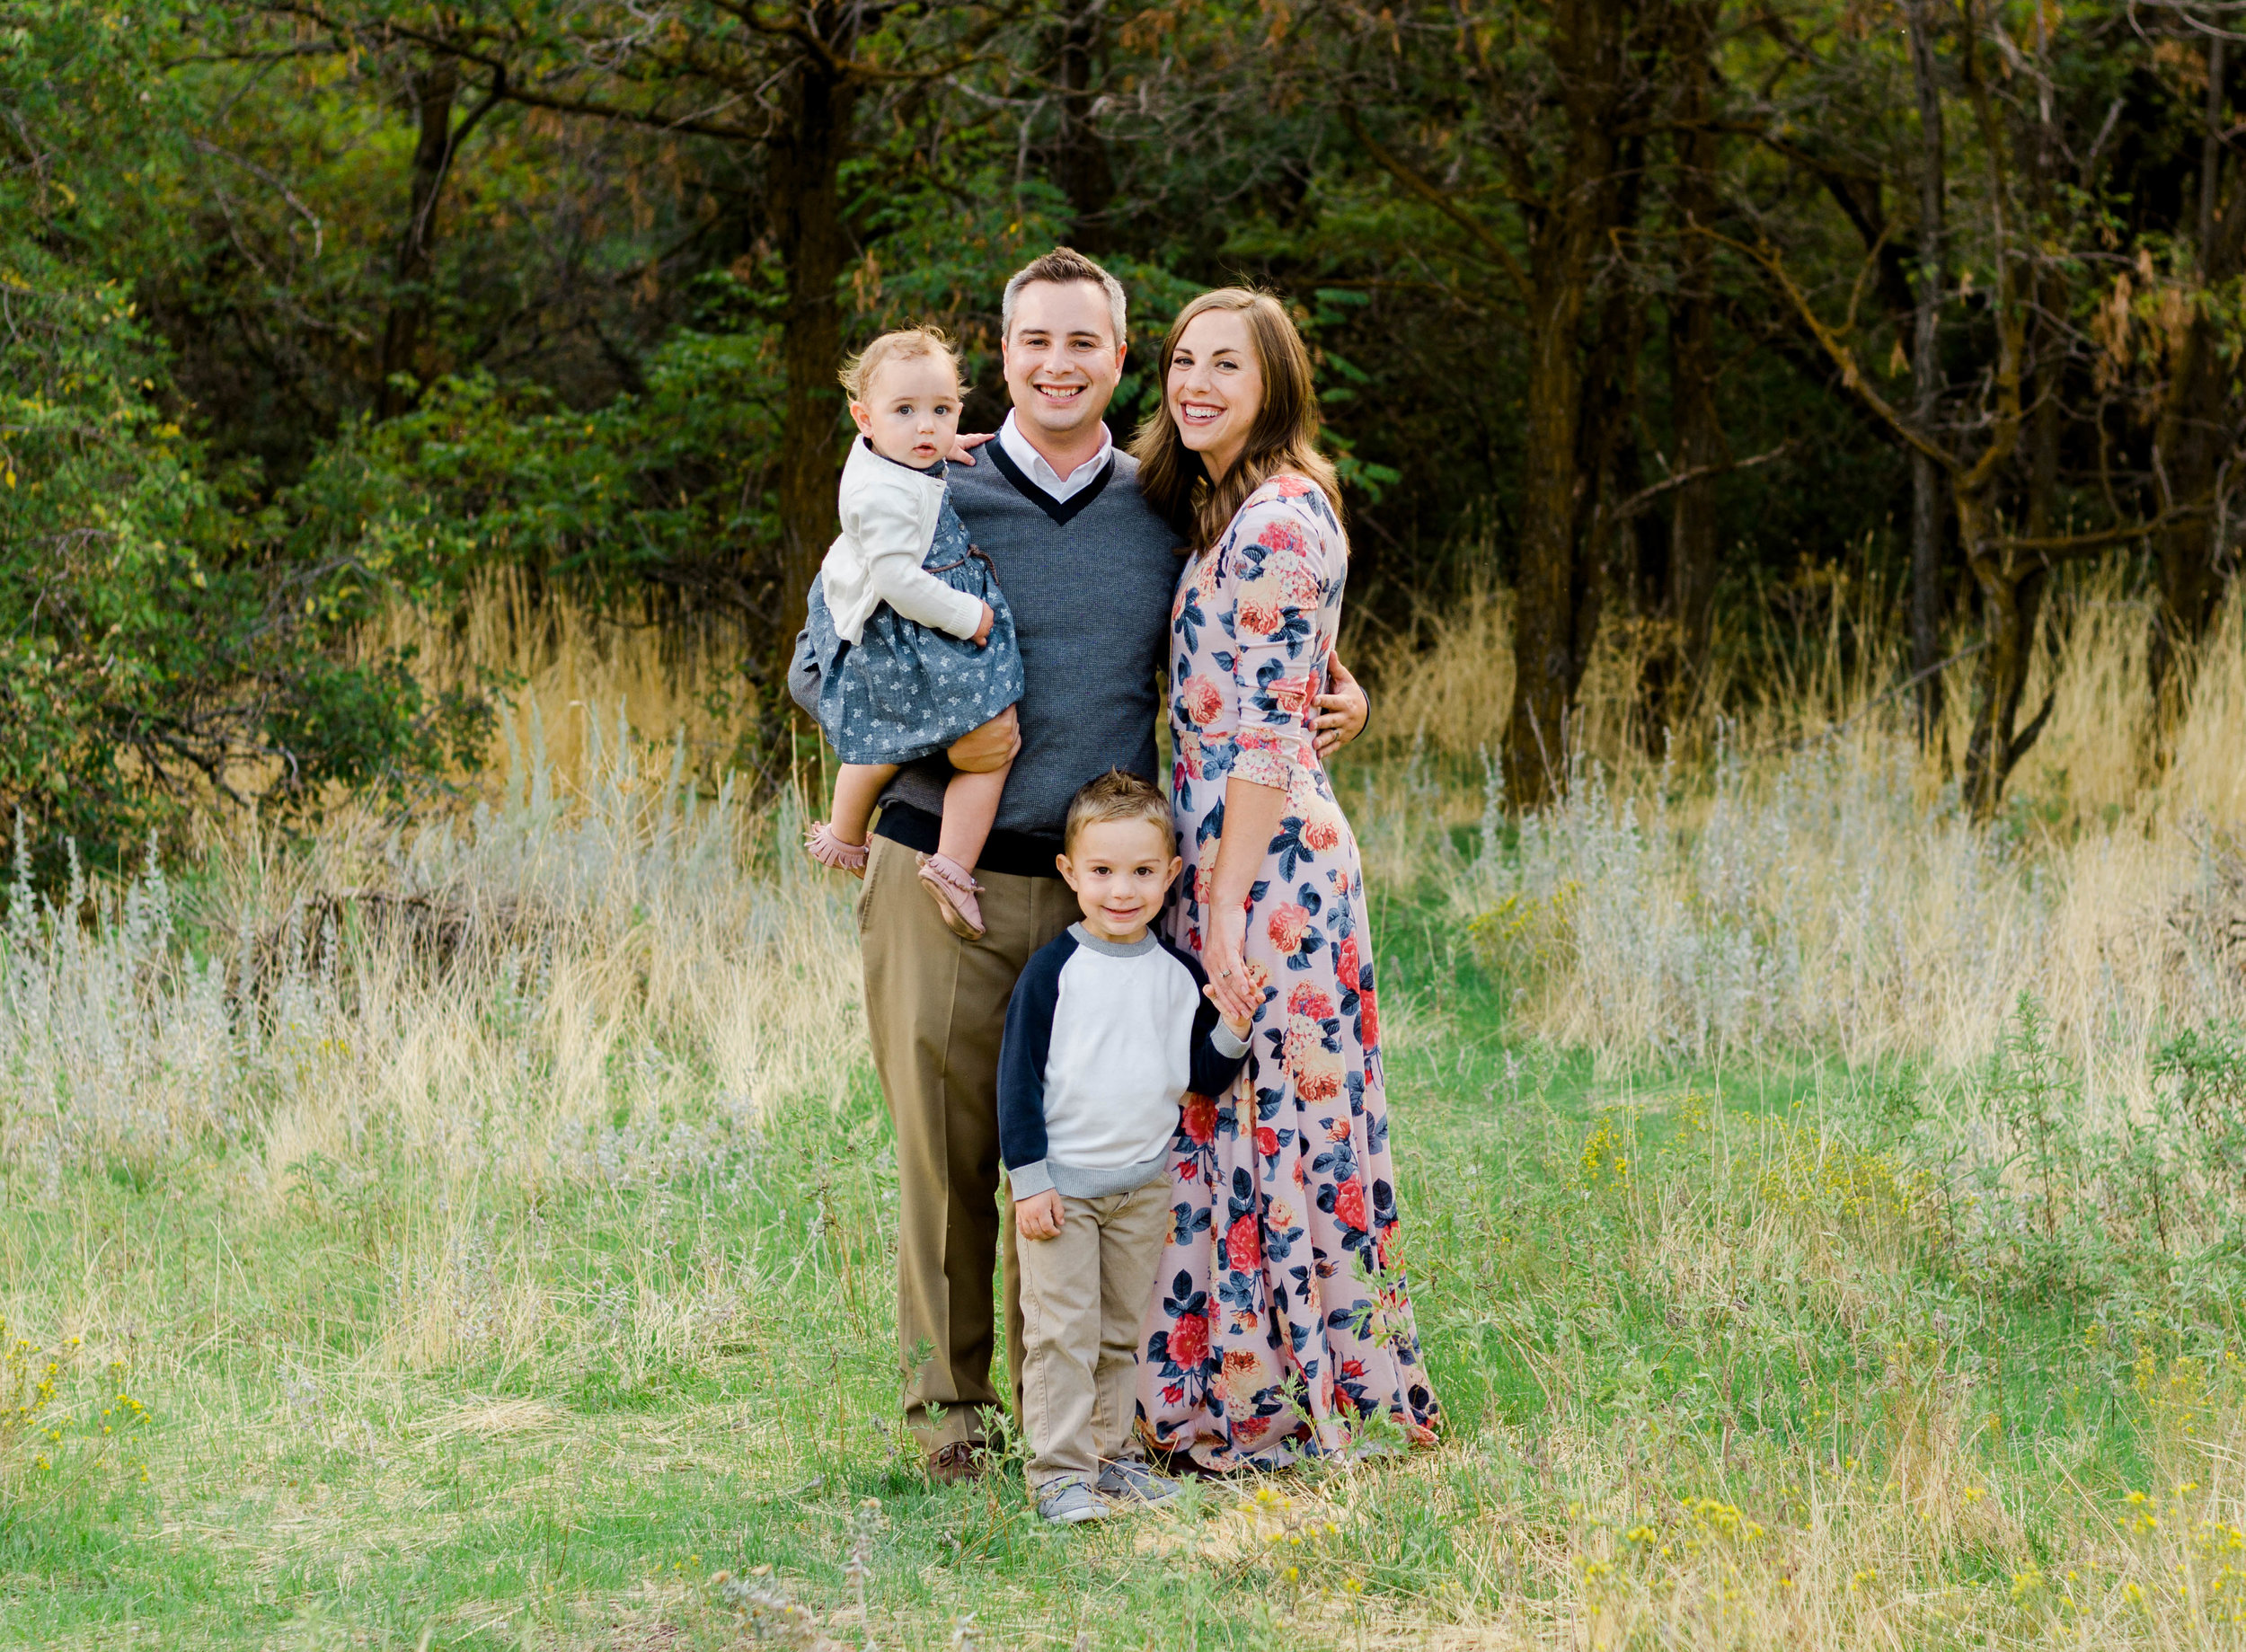 Dan Page Photography Family Portrait Photographer